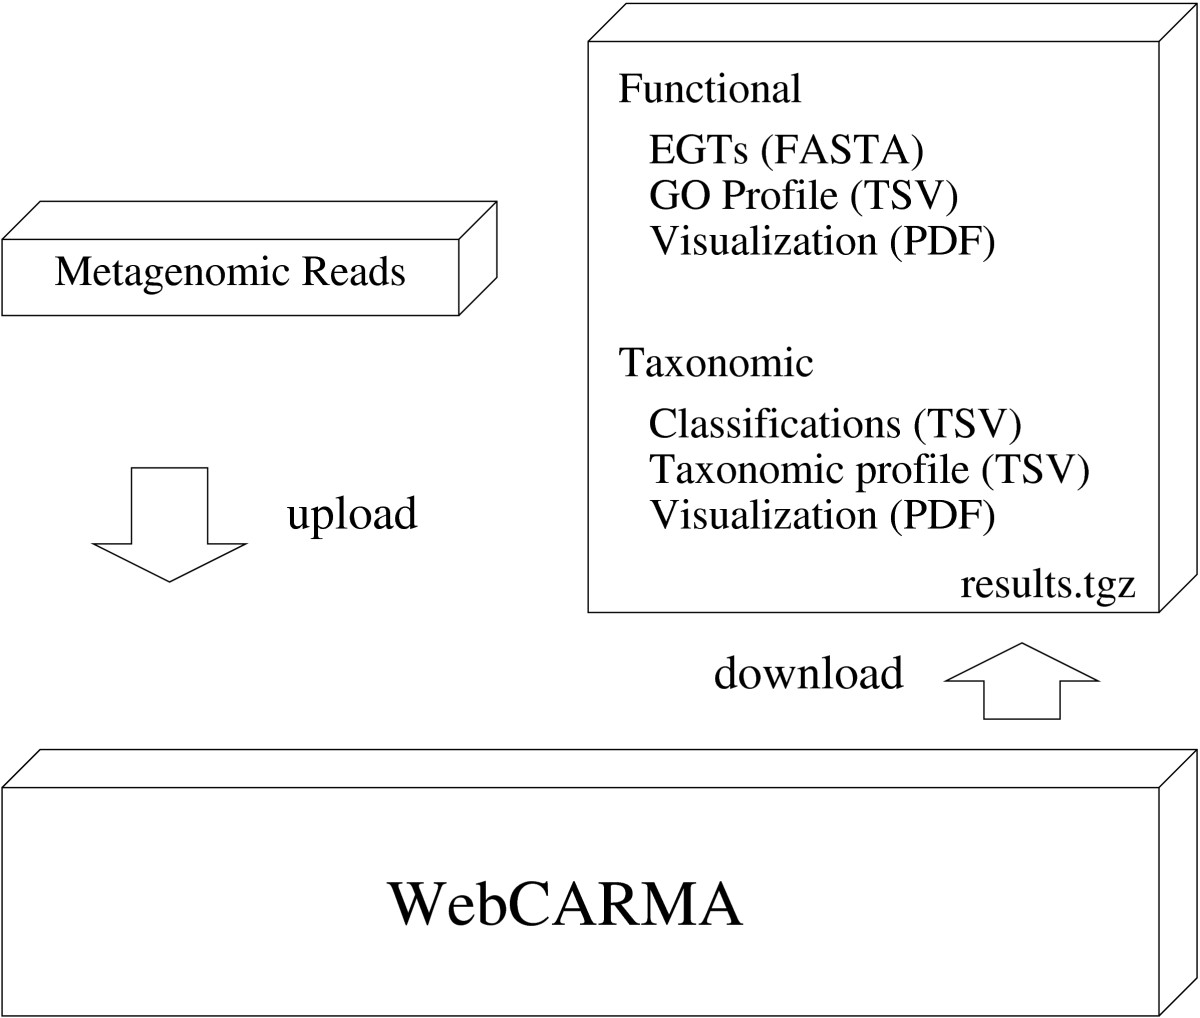 http://static-content.springer.com/image/art%3A10.1186%2F1471-2105-10-430/MediaObjects/12859_2009_Article_3160_Fig1_HTML.jpg